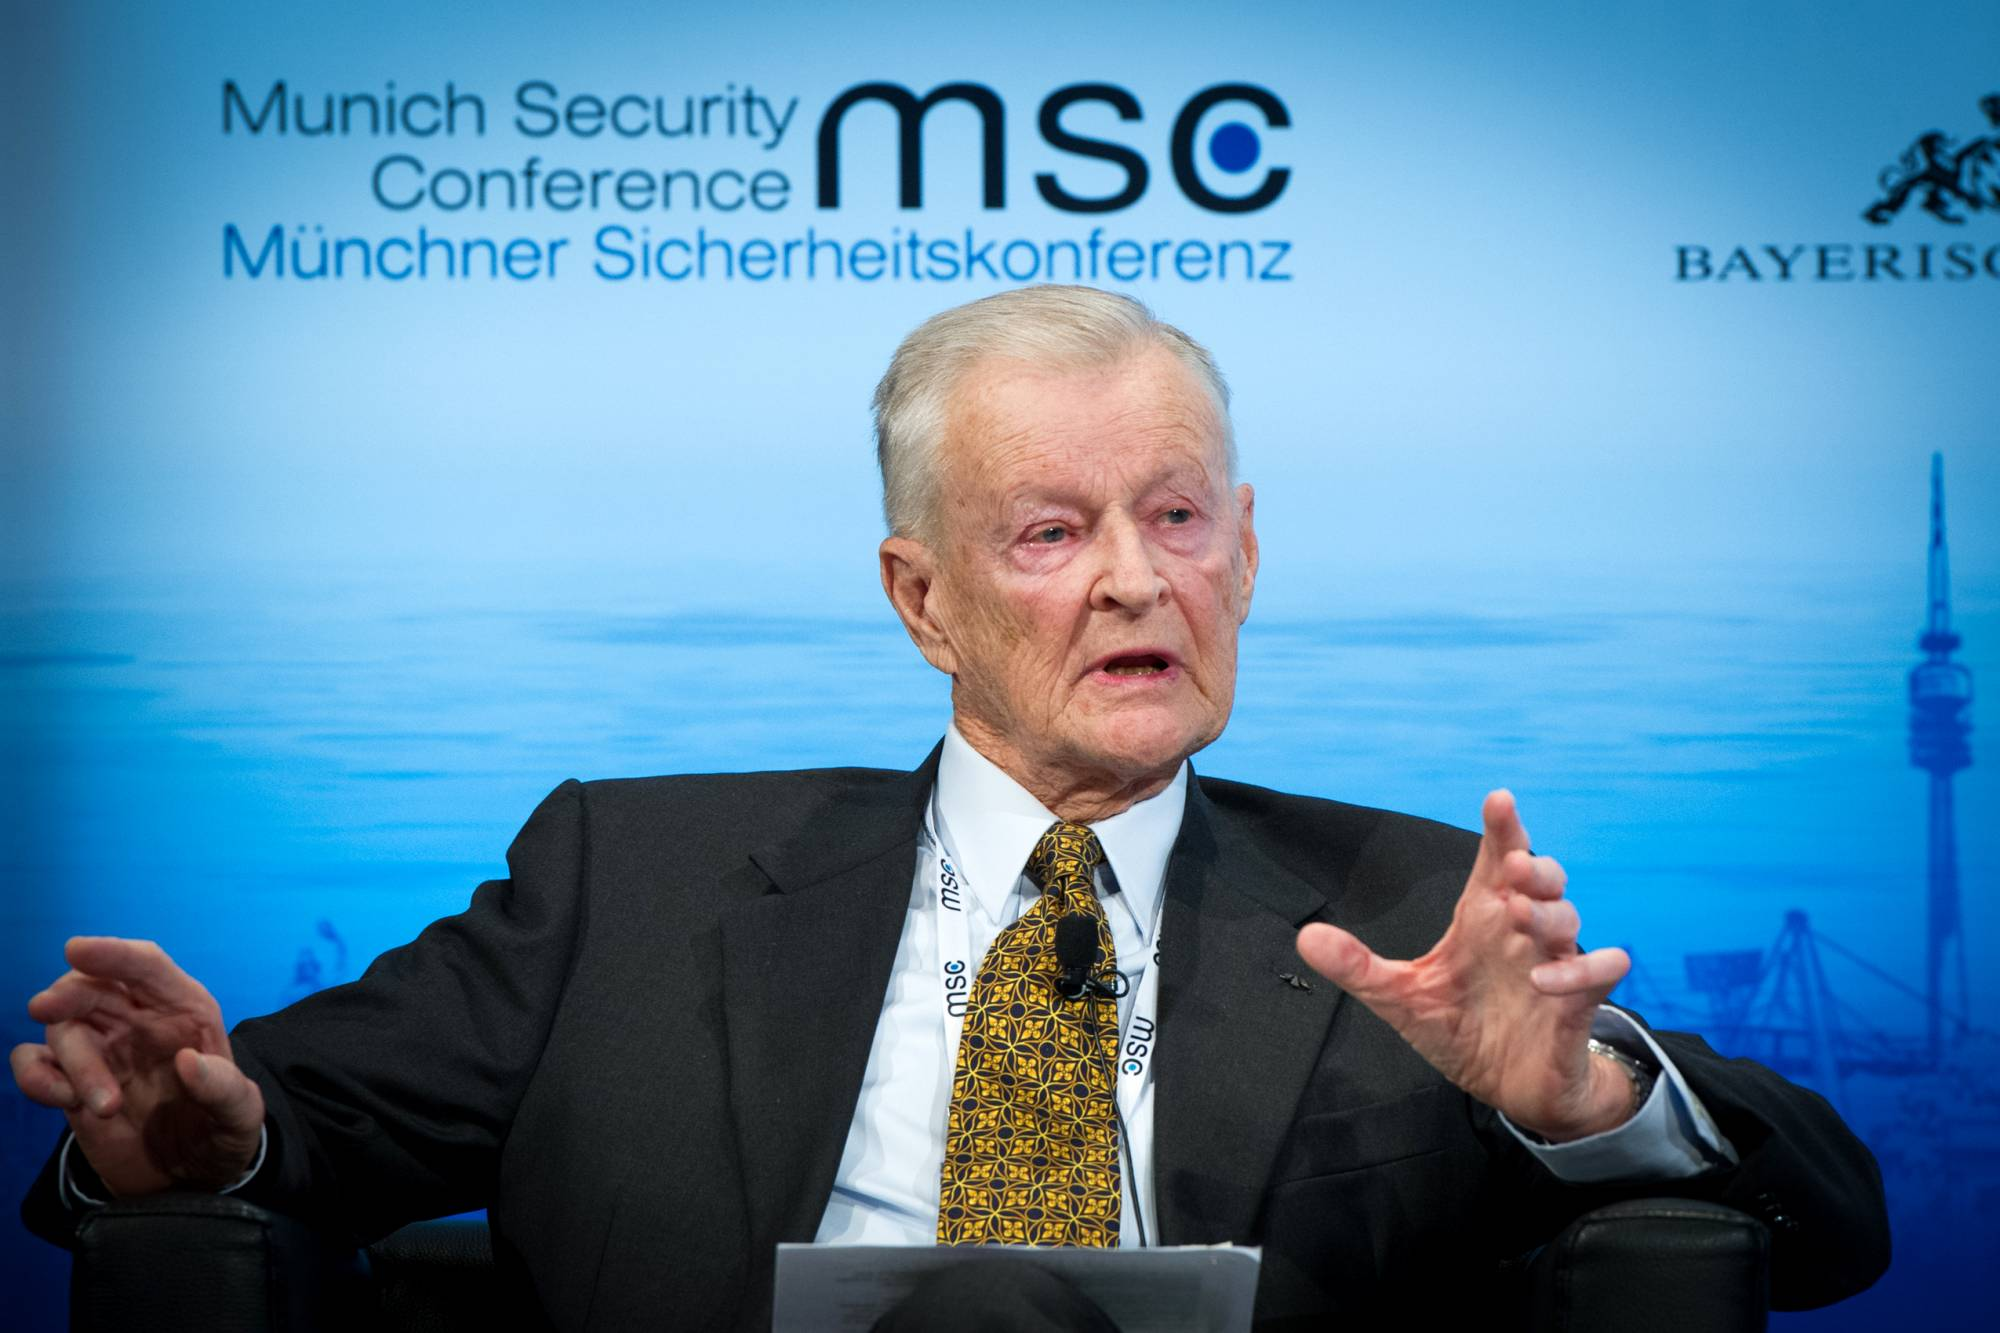 50th Munich Security Conference 2014: Zbigniew Brzezinski: Zbigniew Brzezinski (Former United States National Security Advisor; Counselor and Trustee, Center for Strategic and International Studies)